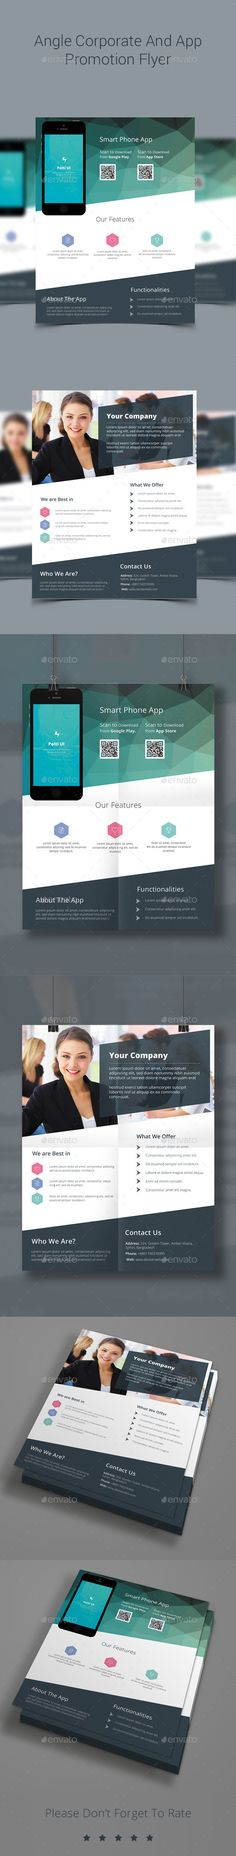 Angle Modern Corporate And App Promotion Business Flyer on Behance